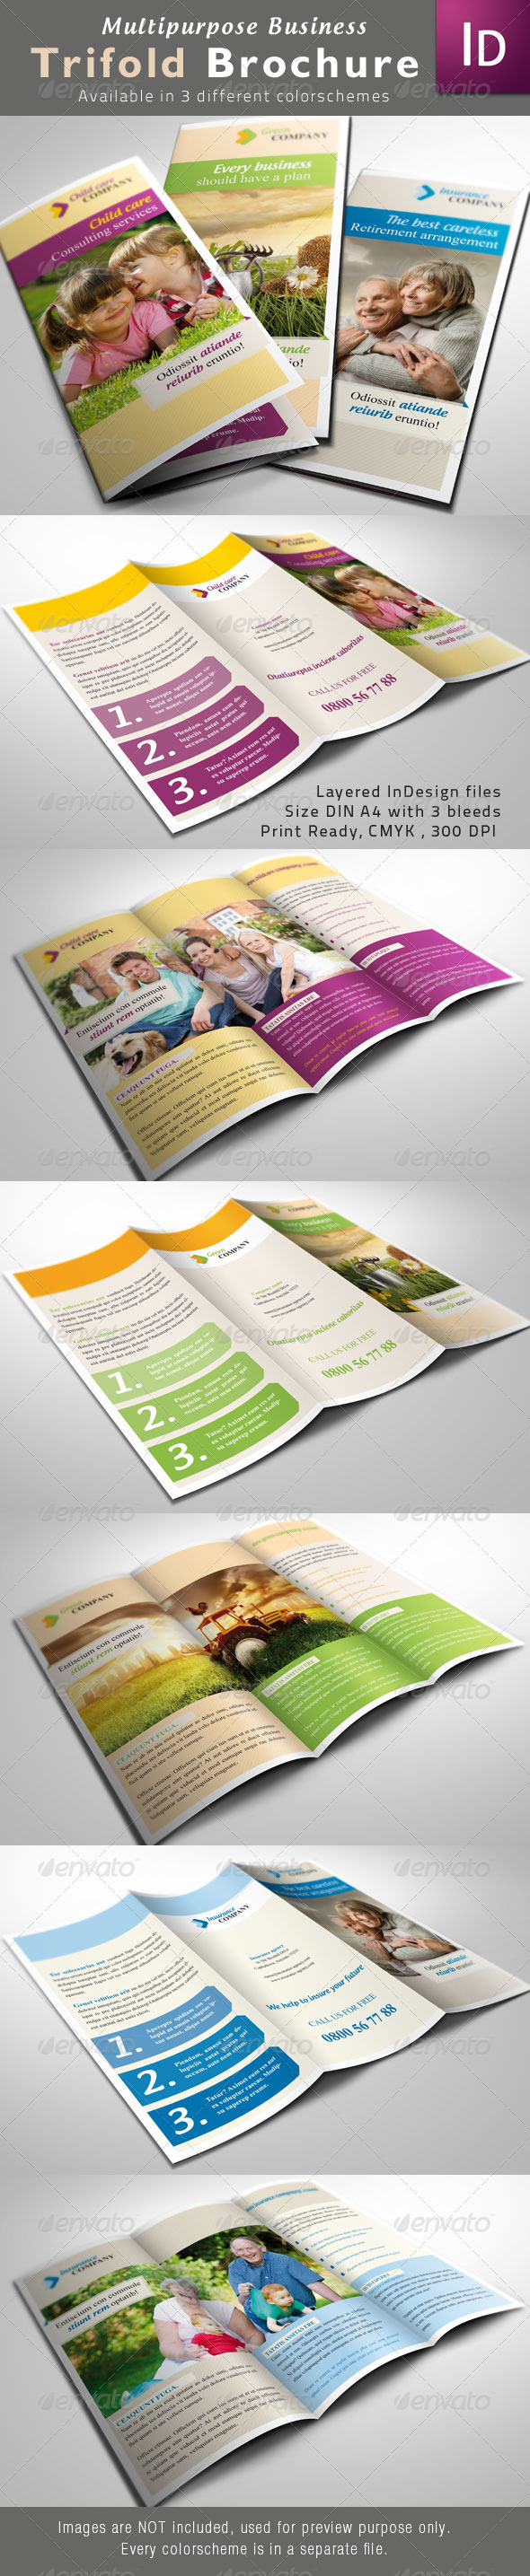 Multipurpose Trifold Brochures - Corporate Brochures